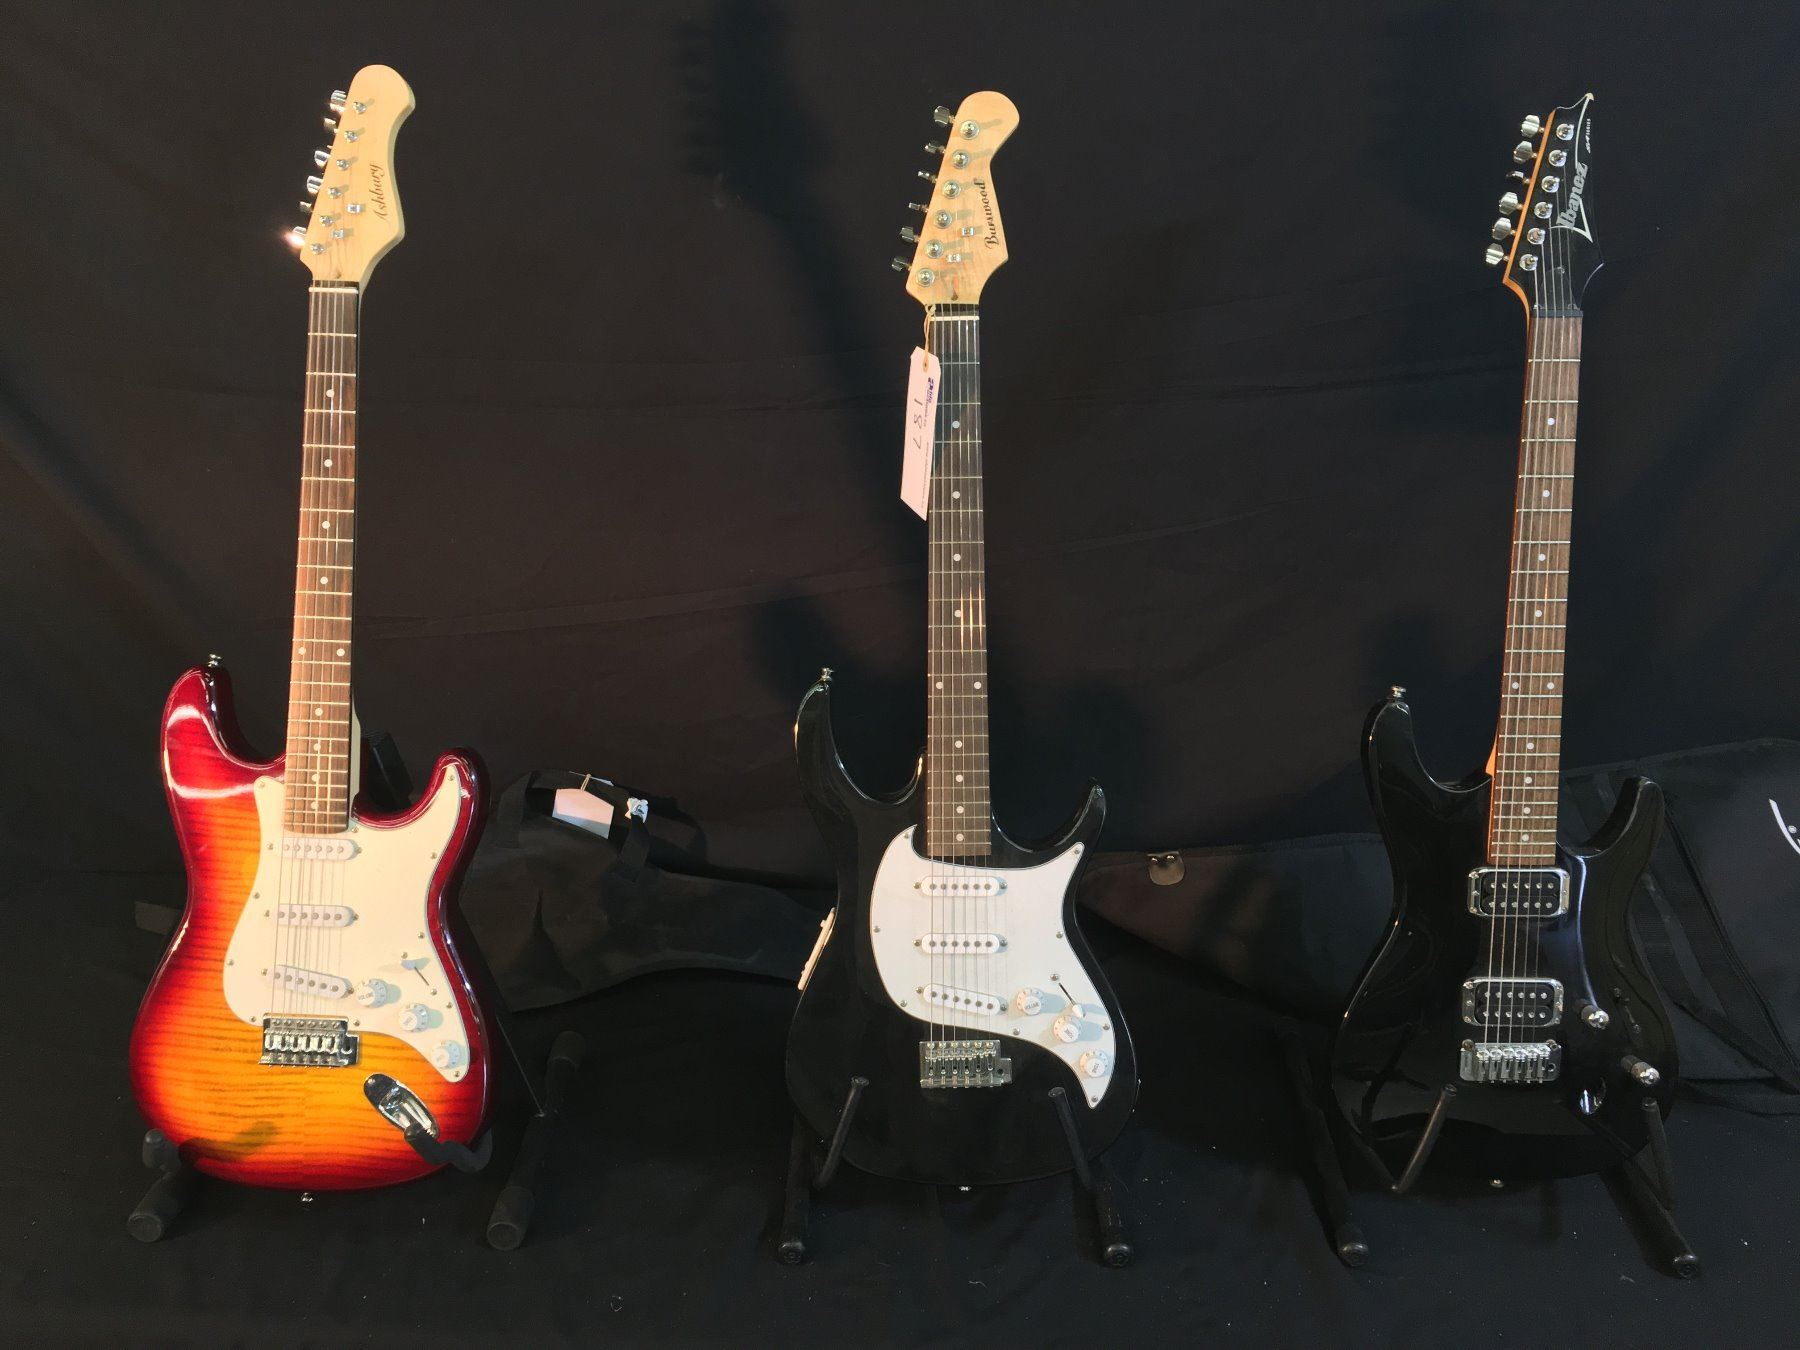 SURREY GUITAR AUCTION - Guitar Auction - Page 2 of 5 - Able Auctions